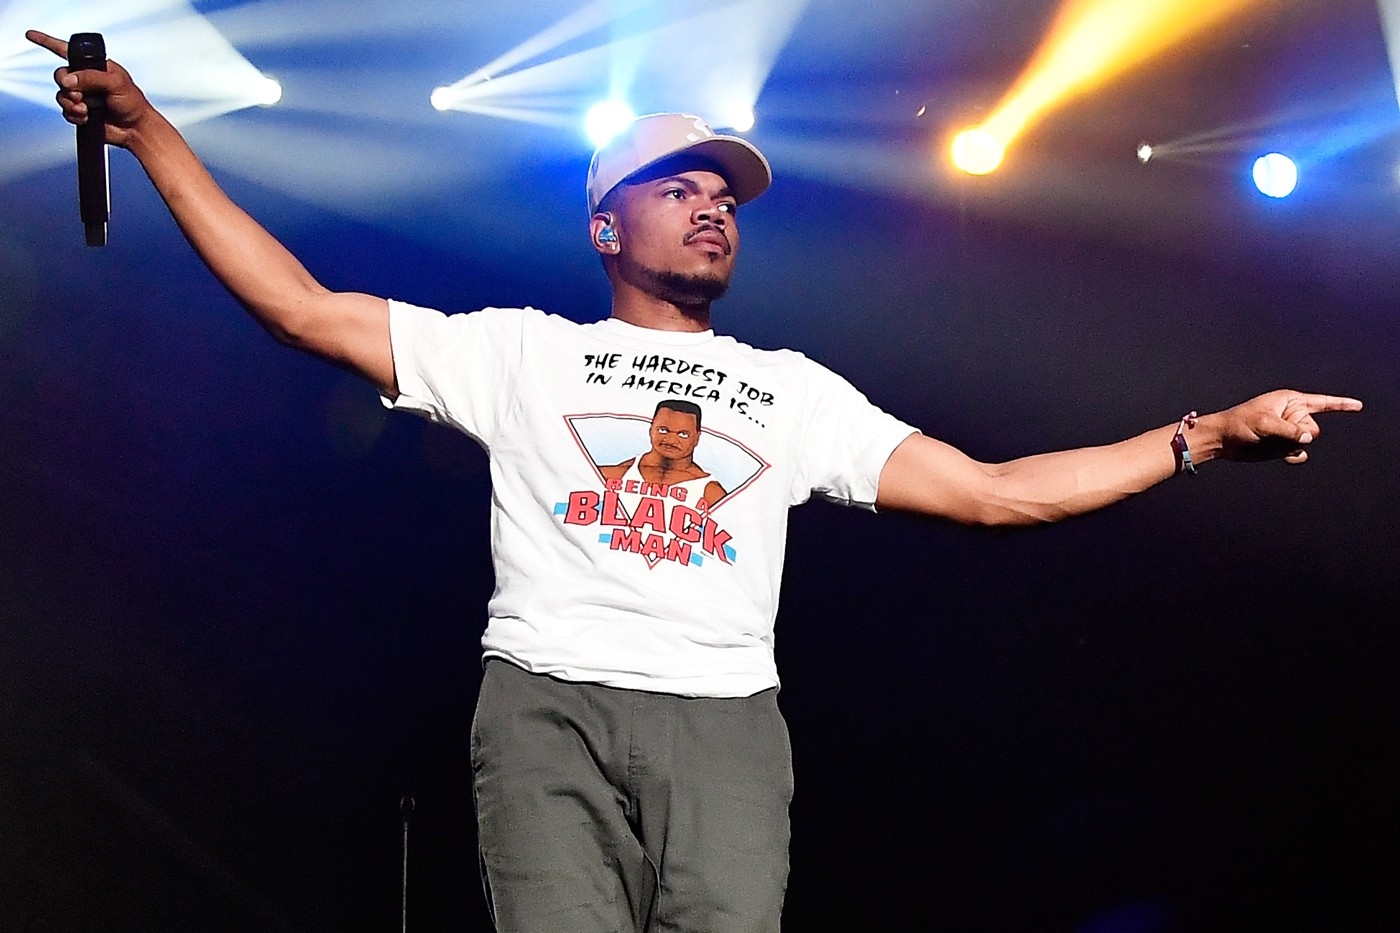 Chance the Rapper's 'Coloring Book' Exceeds 1.5 Billion Spotify Streams